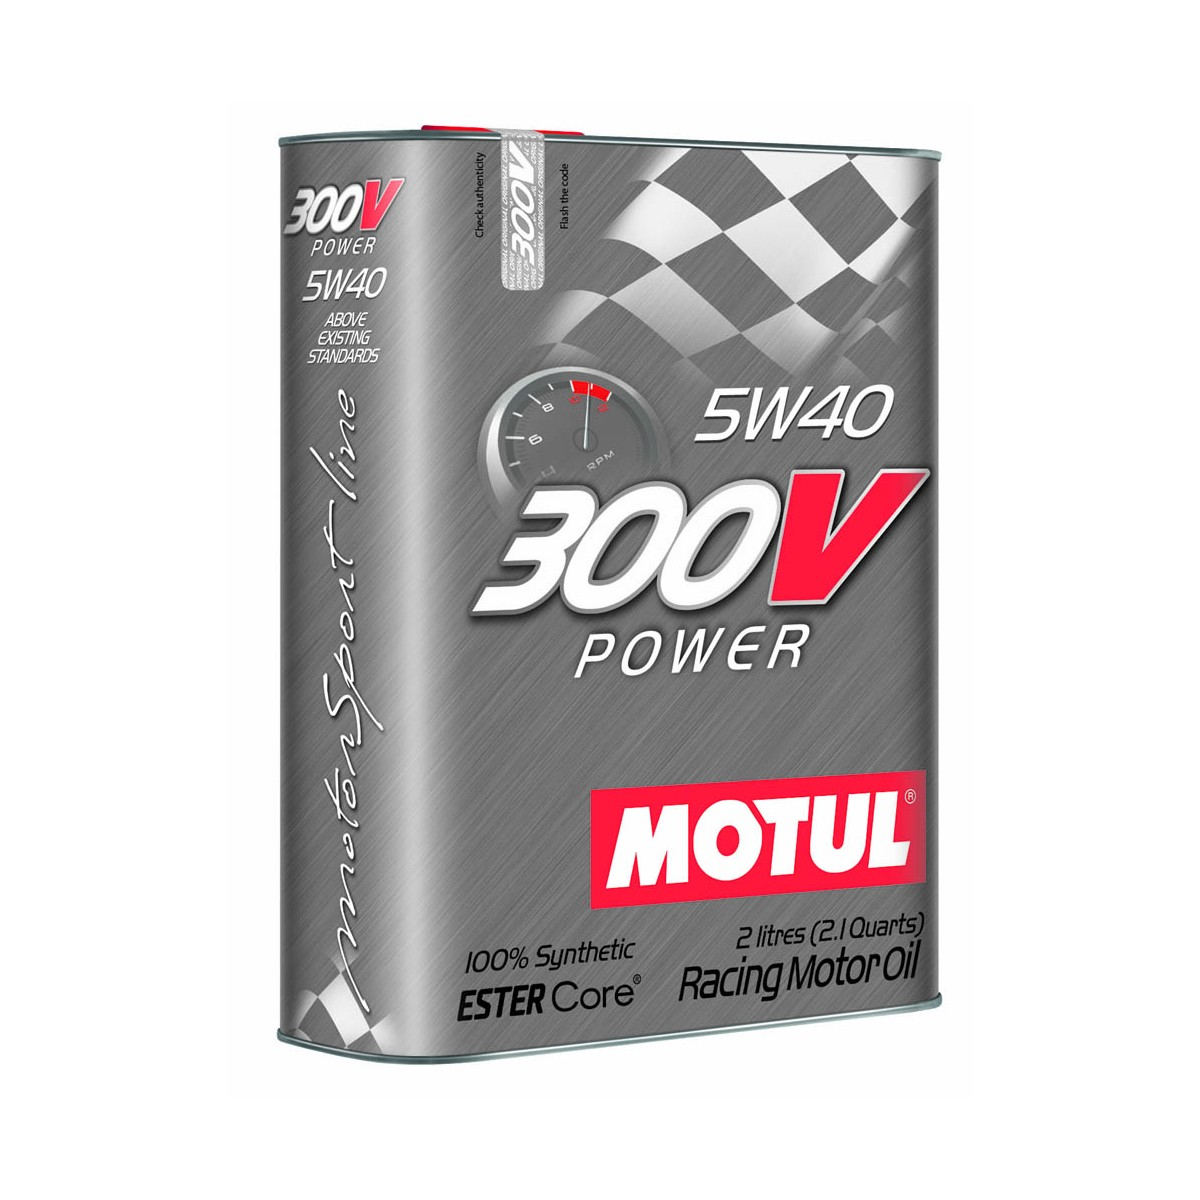 5 W 40 Motul 300v Power Competition Oil 5w40 2 Liter Can Motl 104242